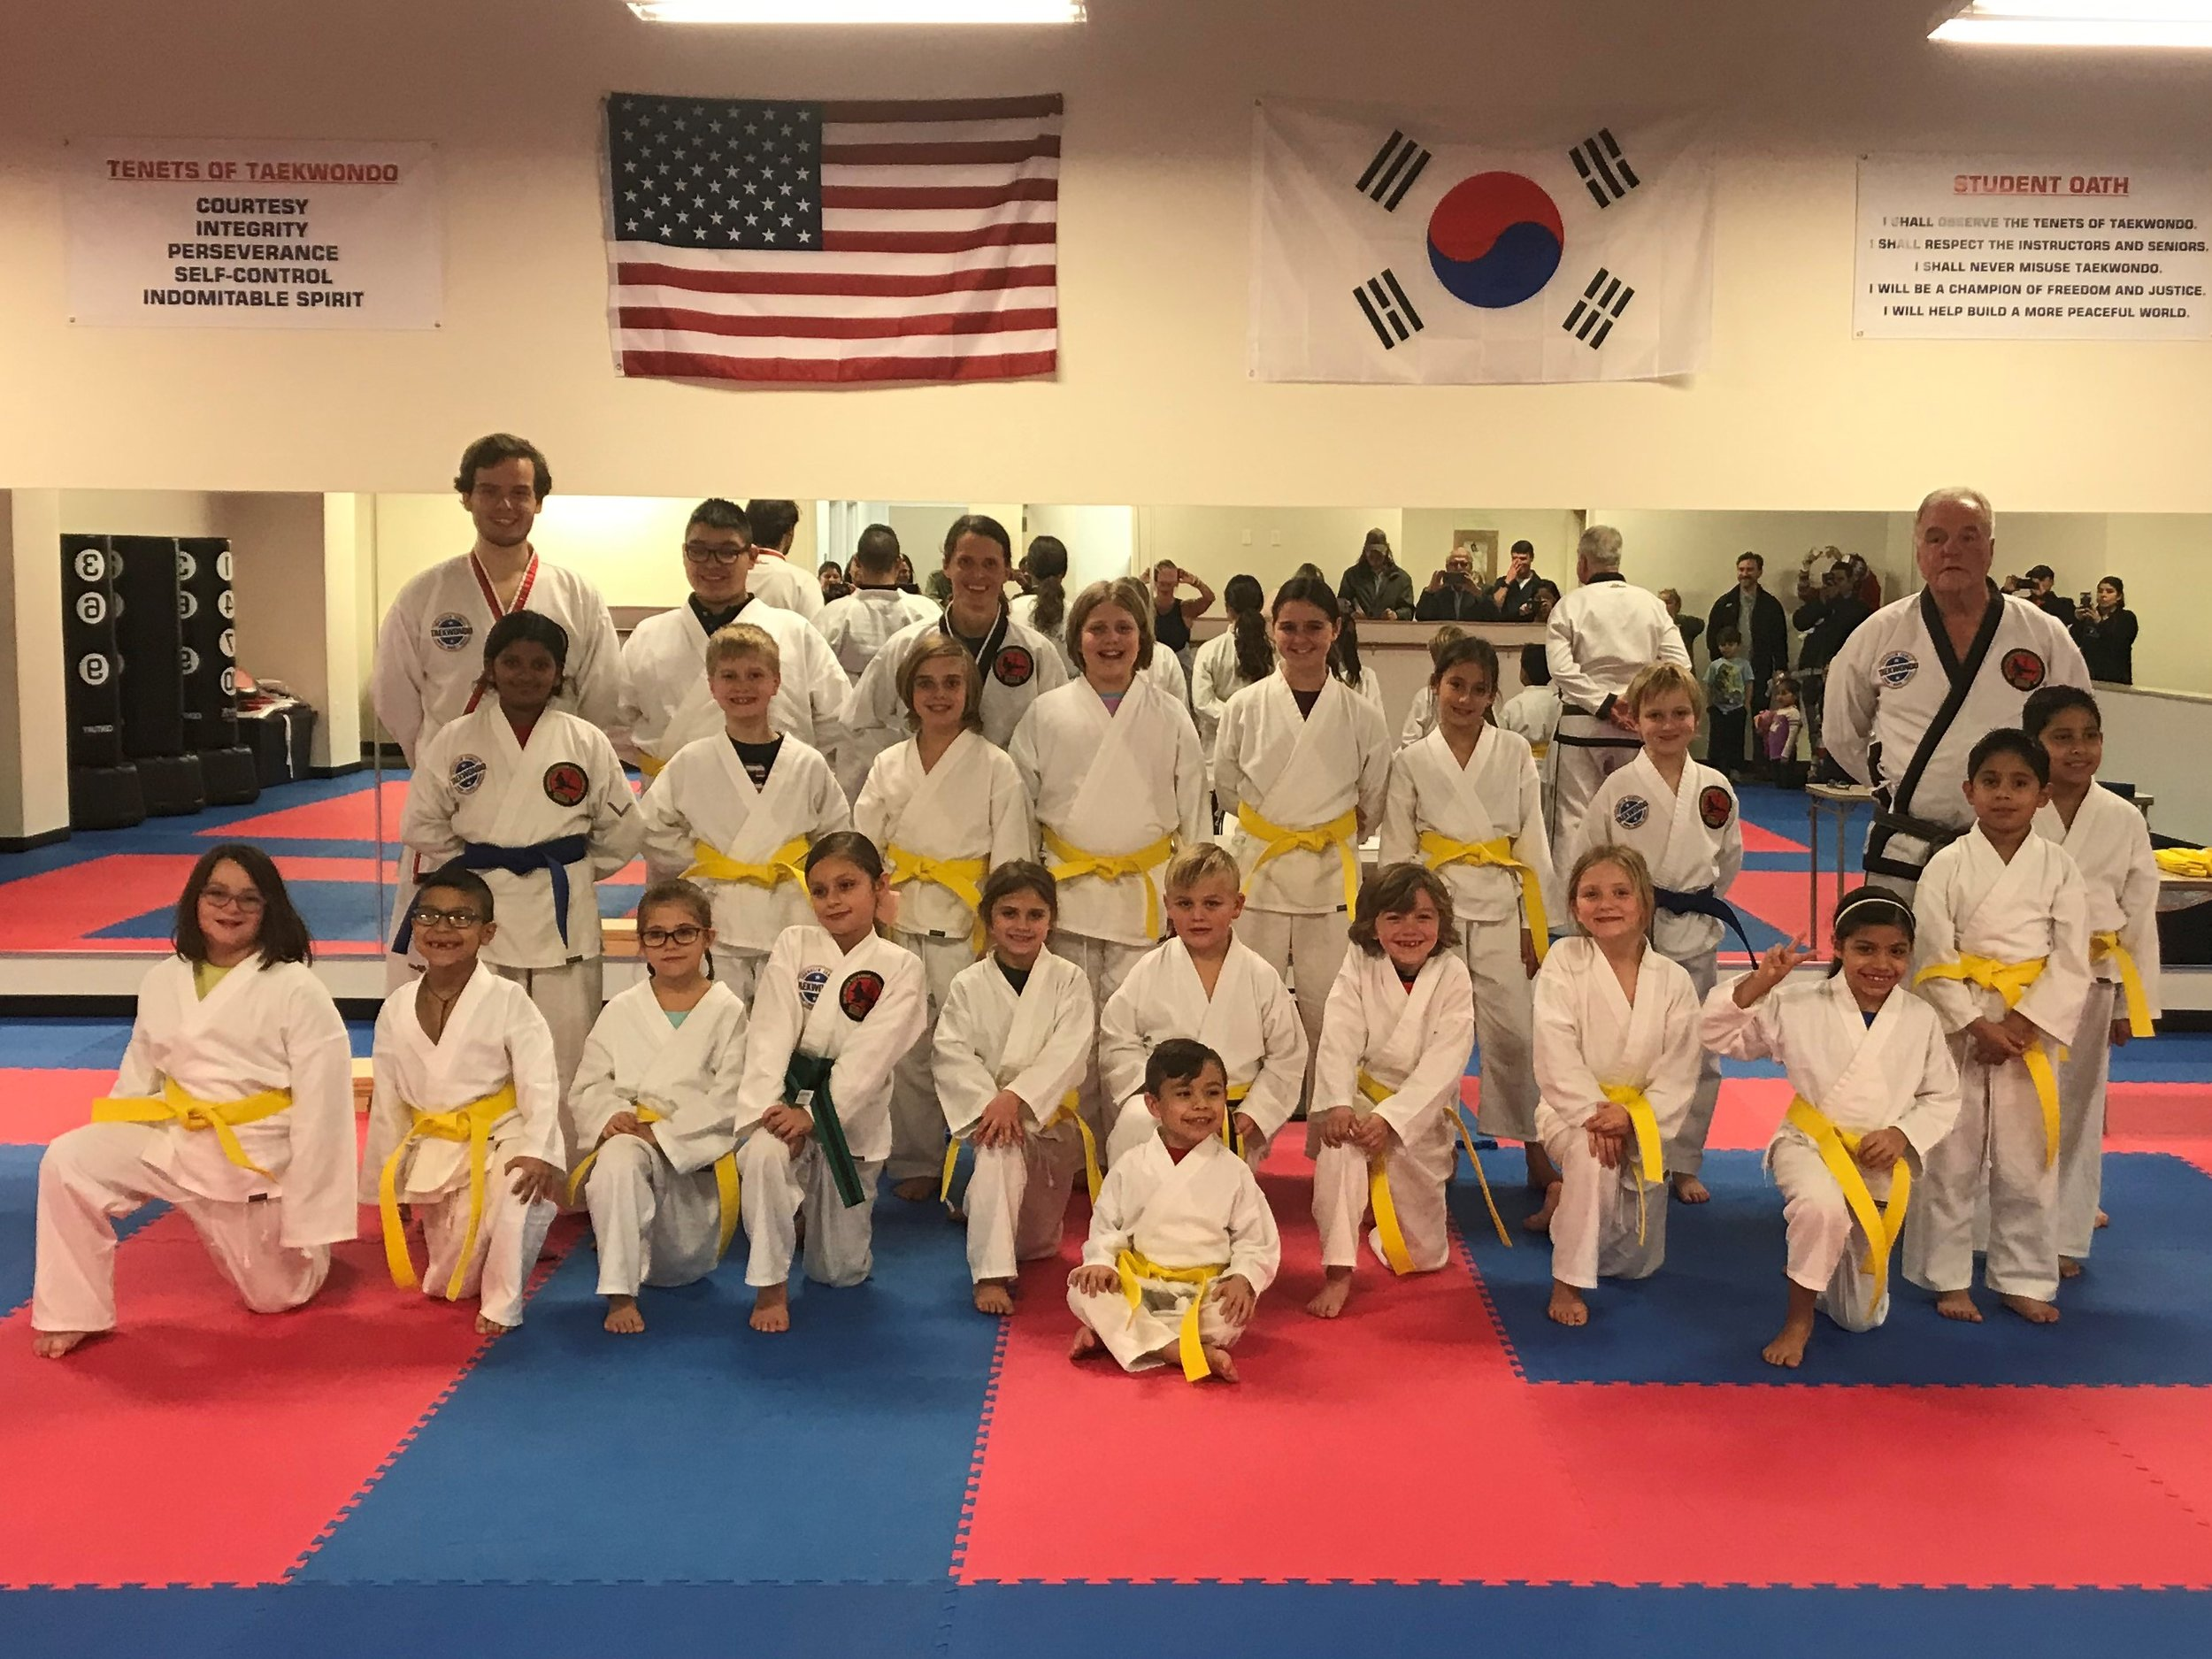 We are so proud of our students! They work hard to keep progressing through the ranks!